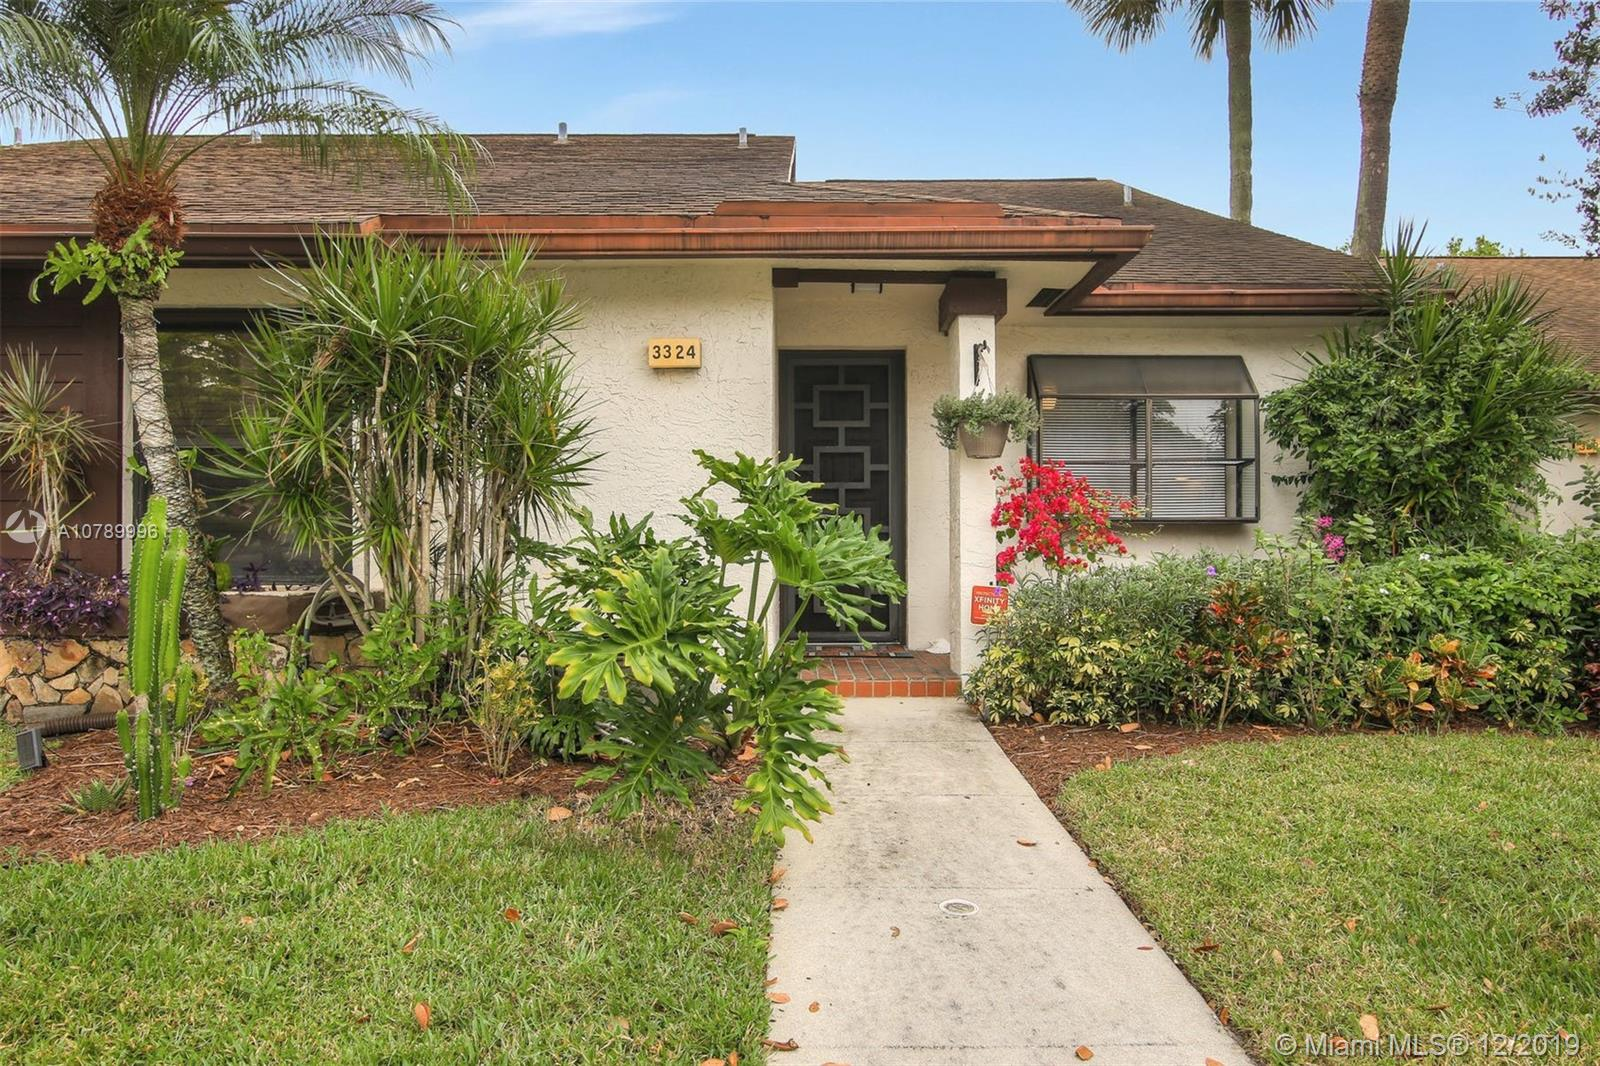 GEORGEOUS, TURN KEY, VERY SPACIOUS UPDATED VILLA IN DESIRABLE TOWNSHIP (GINGER TREE) OF COCONUT CREEK.